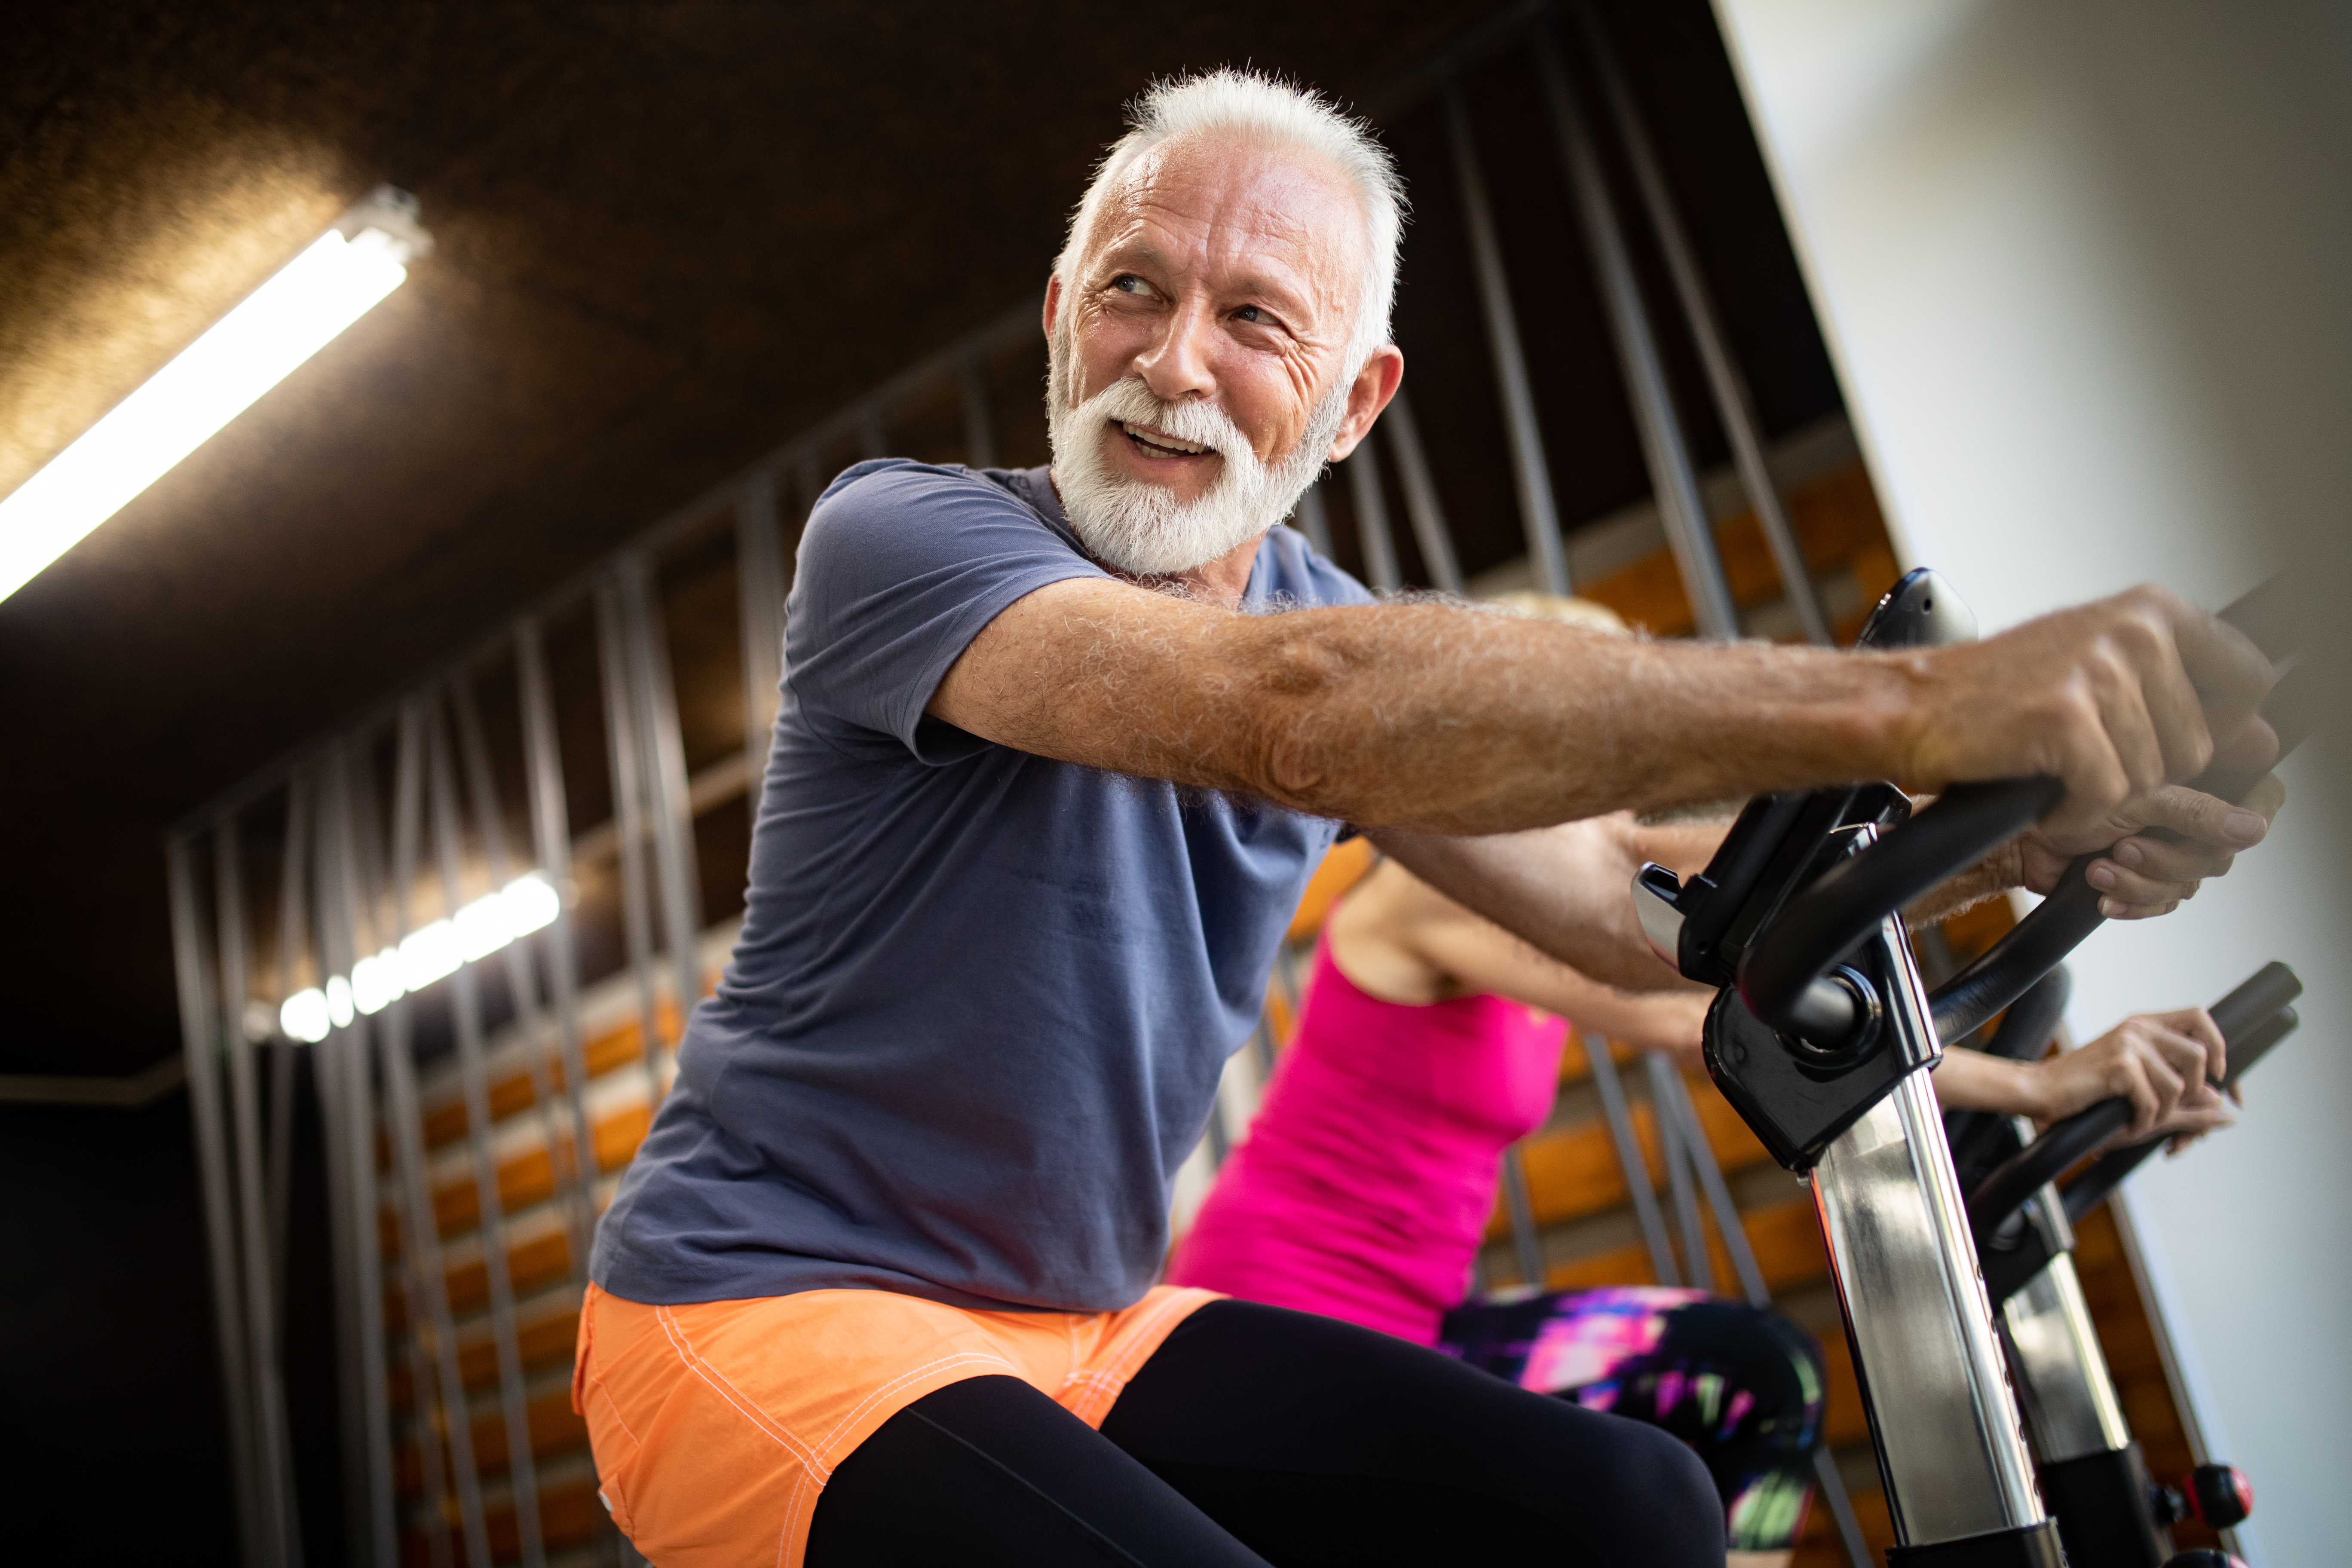 The Pavilions Exercises for Seniors to Stay in Shape